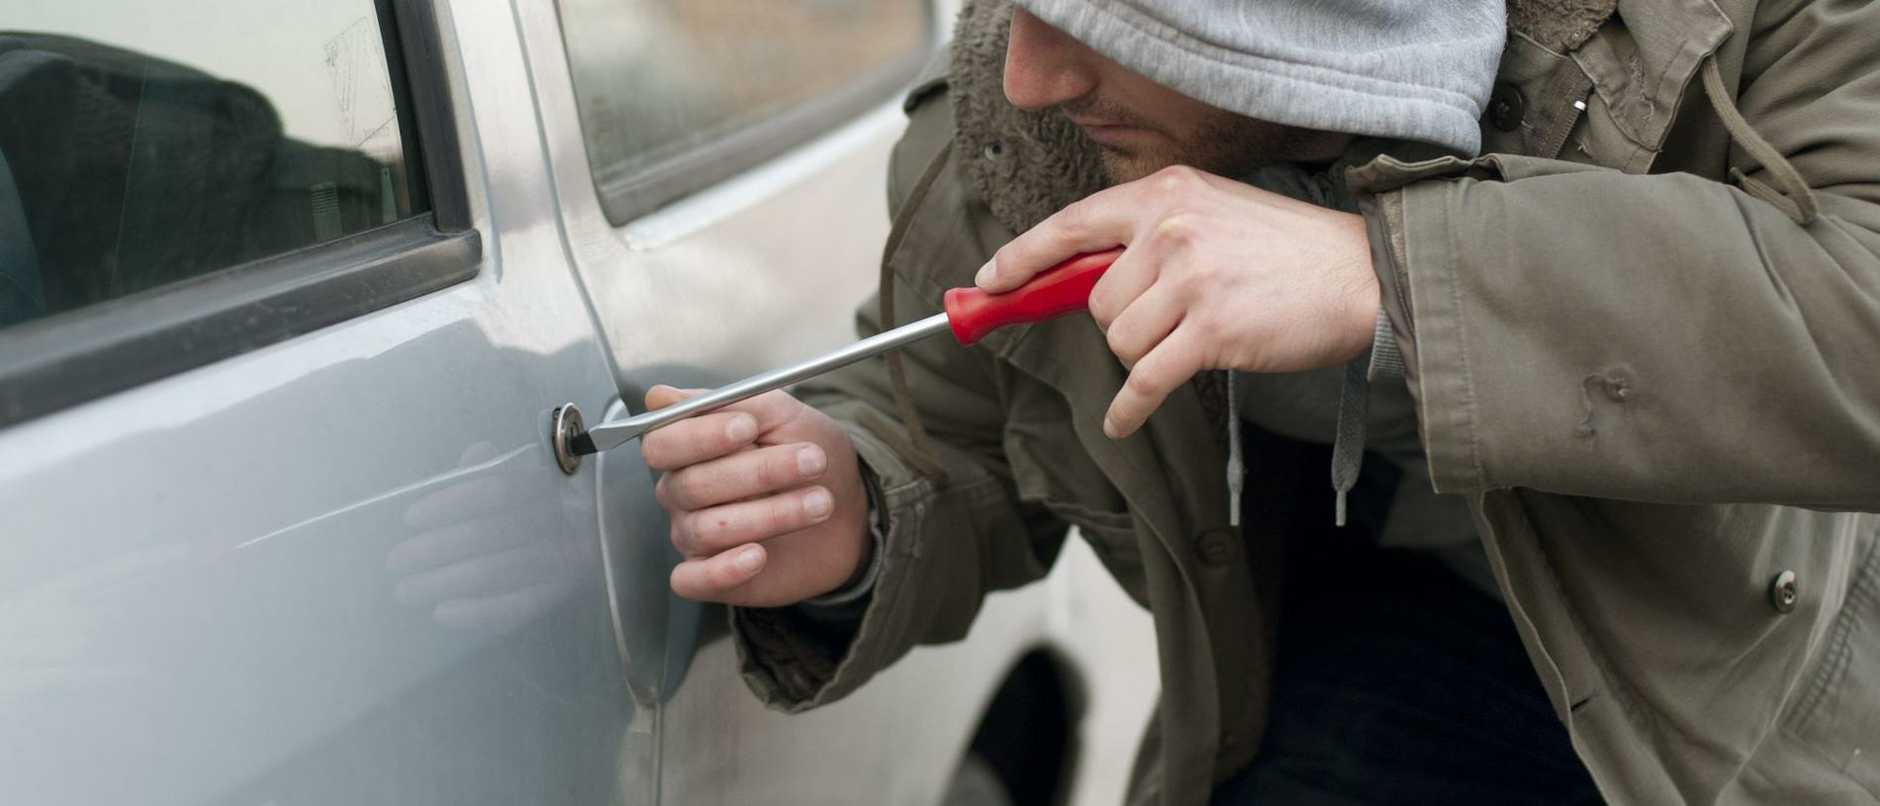 Thinkstock images of generic motor car break-ins crimes. Man wearing hood breaking into a motor car with a screwdriver.